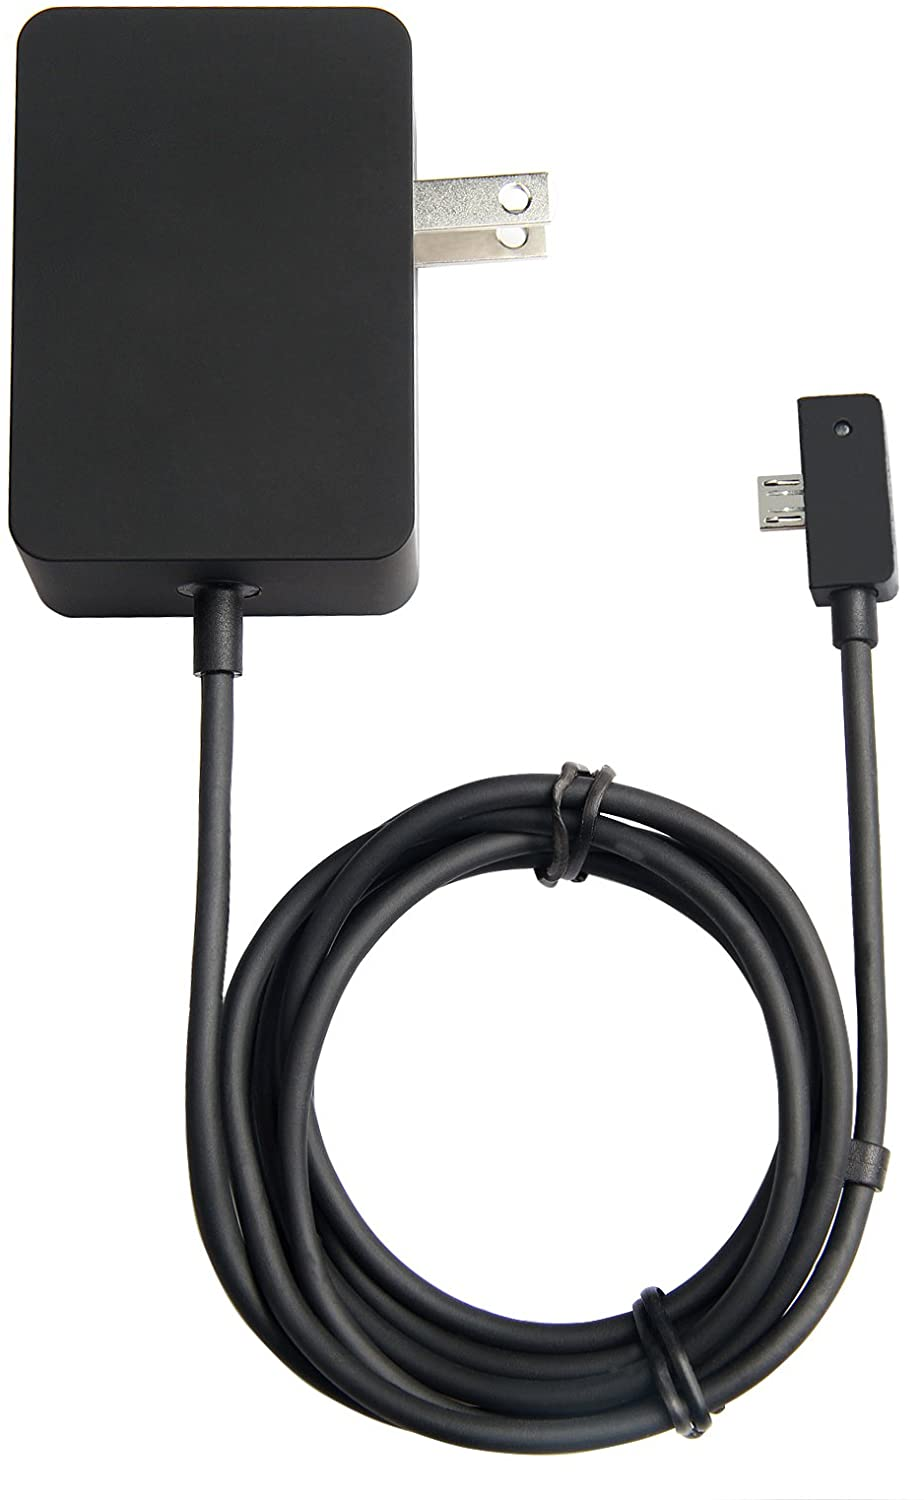 Surface 3 Charger 13W 5.2V 2.5A AC Power Adapter Charger Cord Replacement for Microsoft Surface 3, Model 1623 1624 1645 Tablet with USB Charging Port 4.9Ft Cable-1.5m